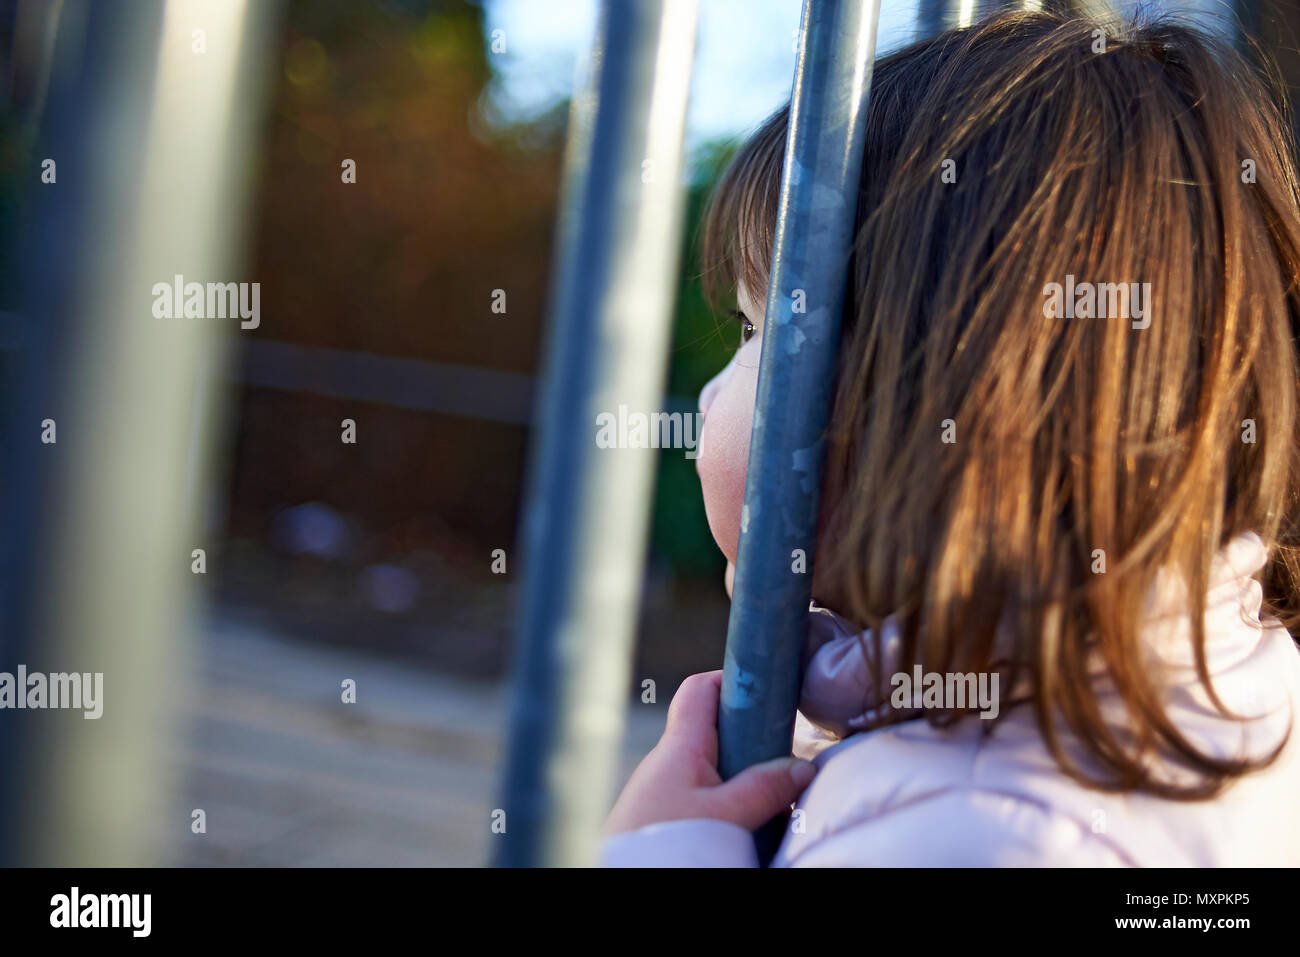 Cute Japanese baby girl sticking her head through some metal bars wanting to go out to play - Stock Image